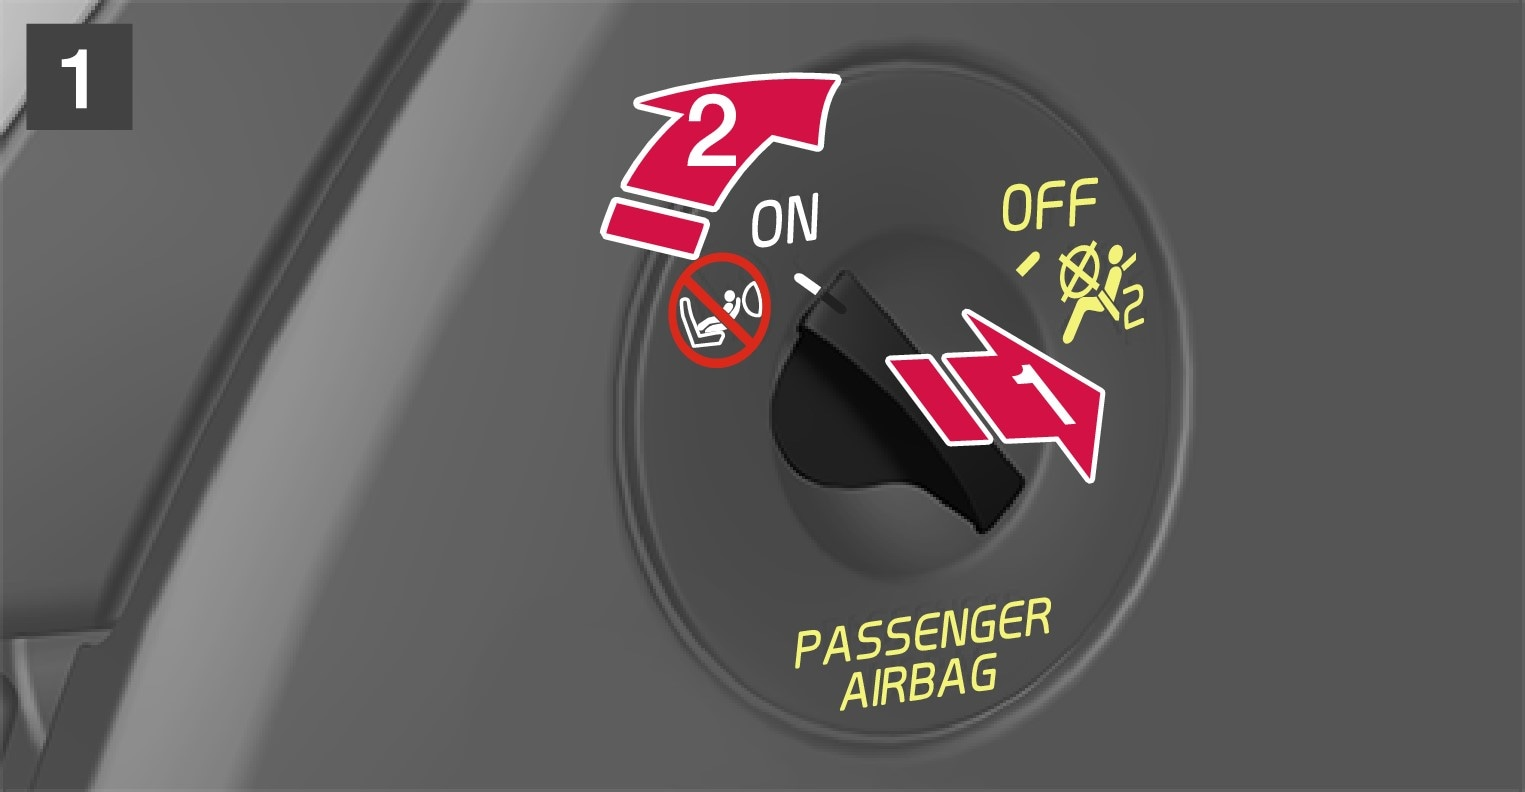 P5-1507–Safety–Passenger airbag cut off switch to off